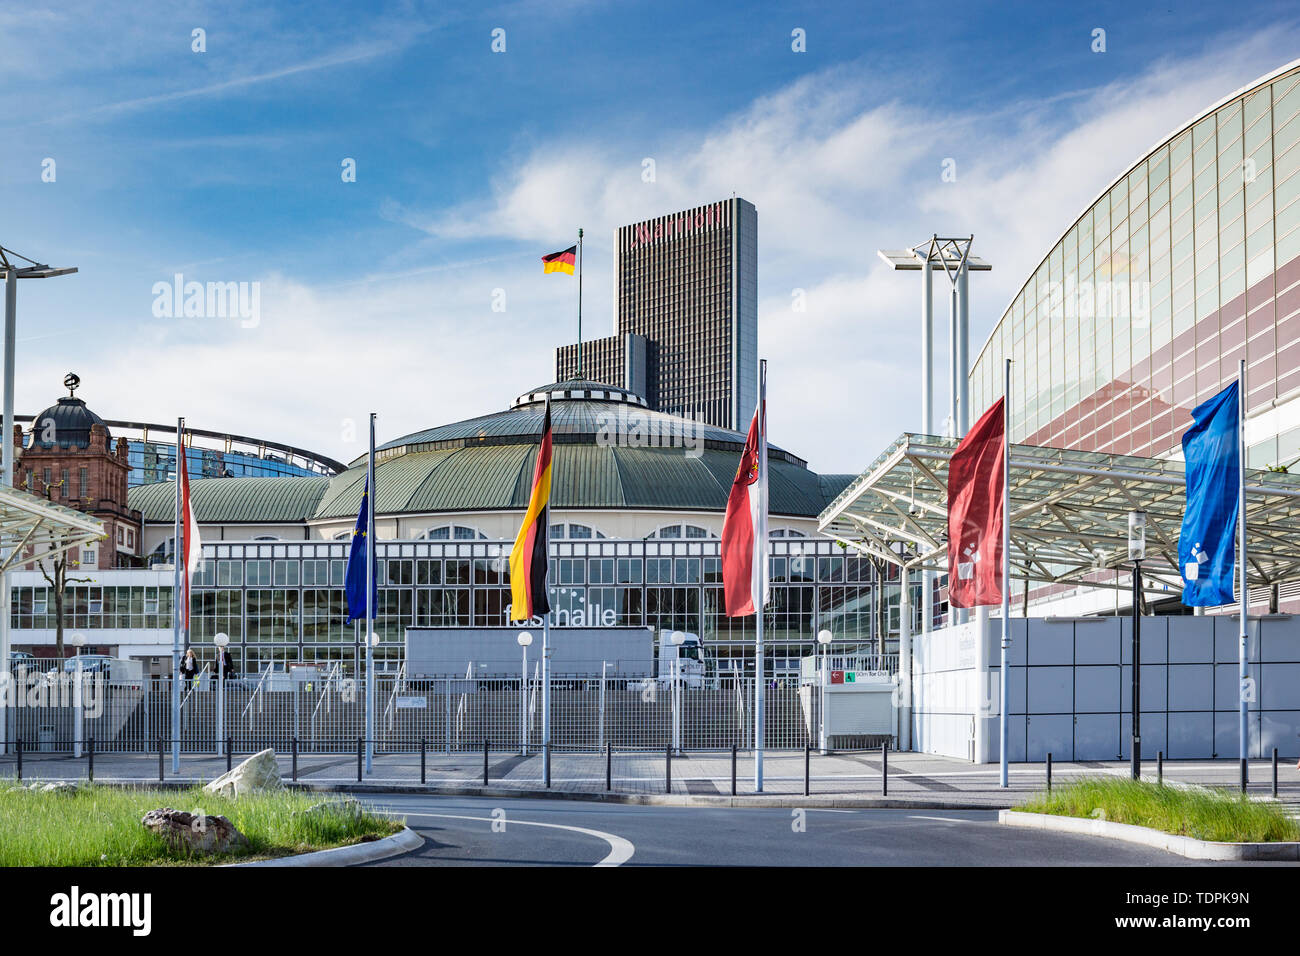 Picture of the Festhalle Messe in Frankfurt where the Fair is held every week Stock Photo